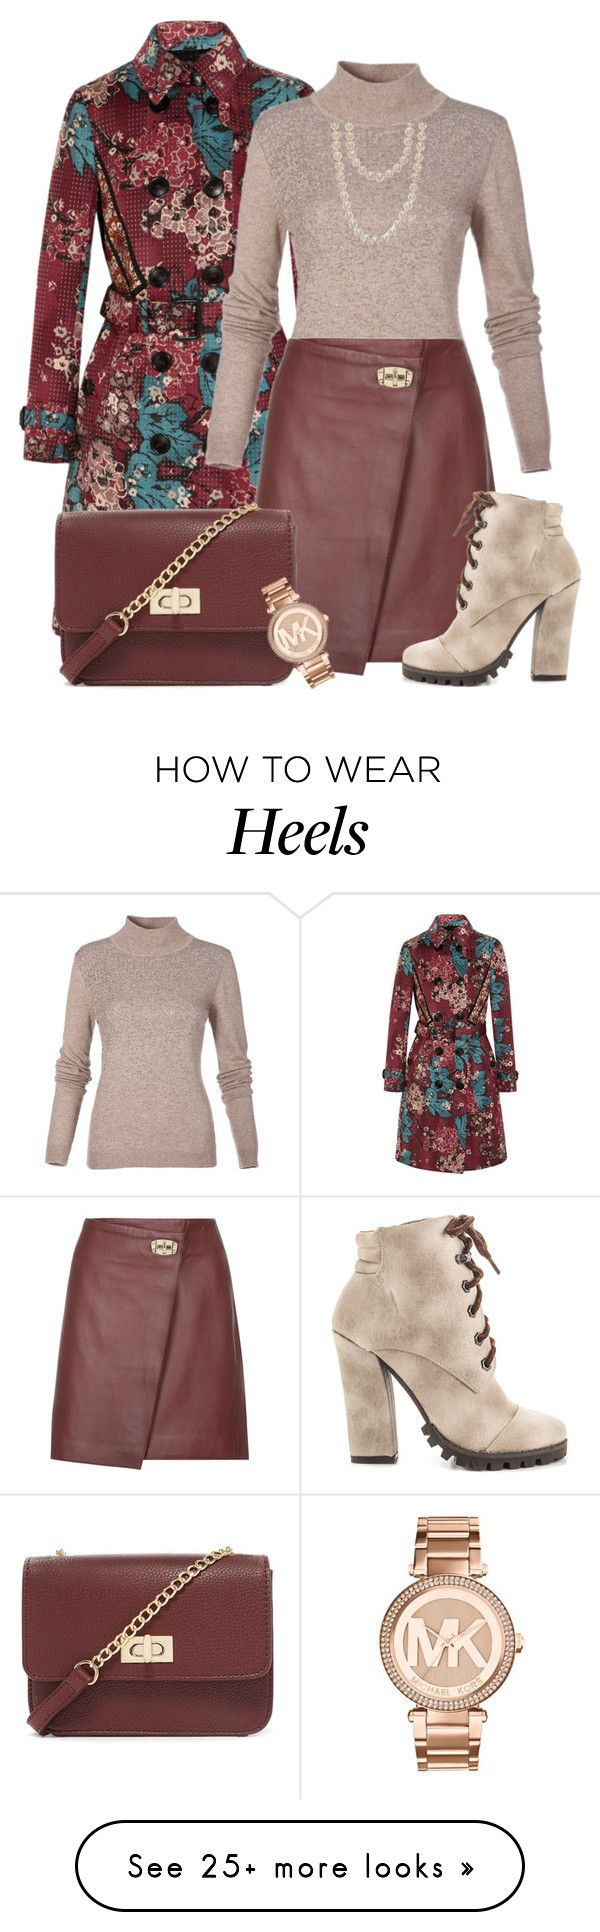 """Saia"" by ebramos on Polyvore featuring Burberry, Reiss, Michael Antonio, Forever 21, Michael Kors and Chanel"